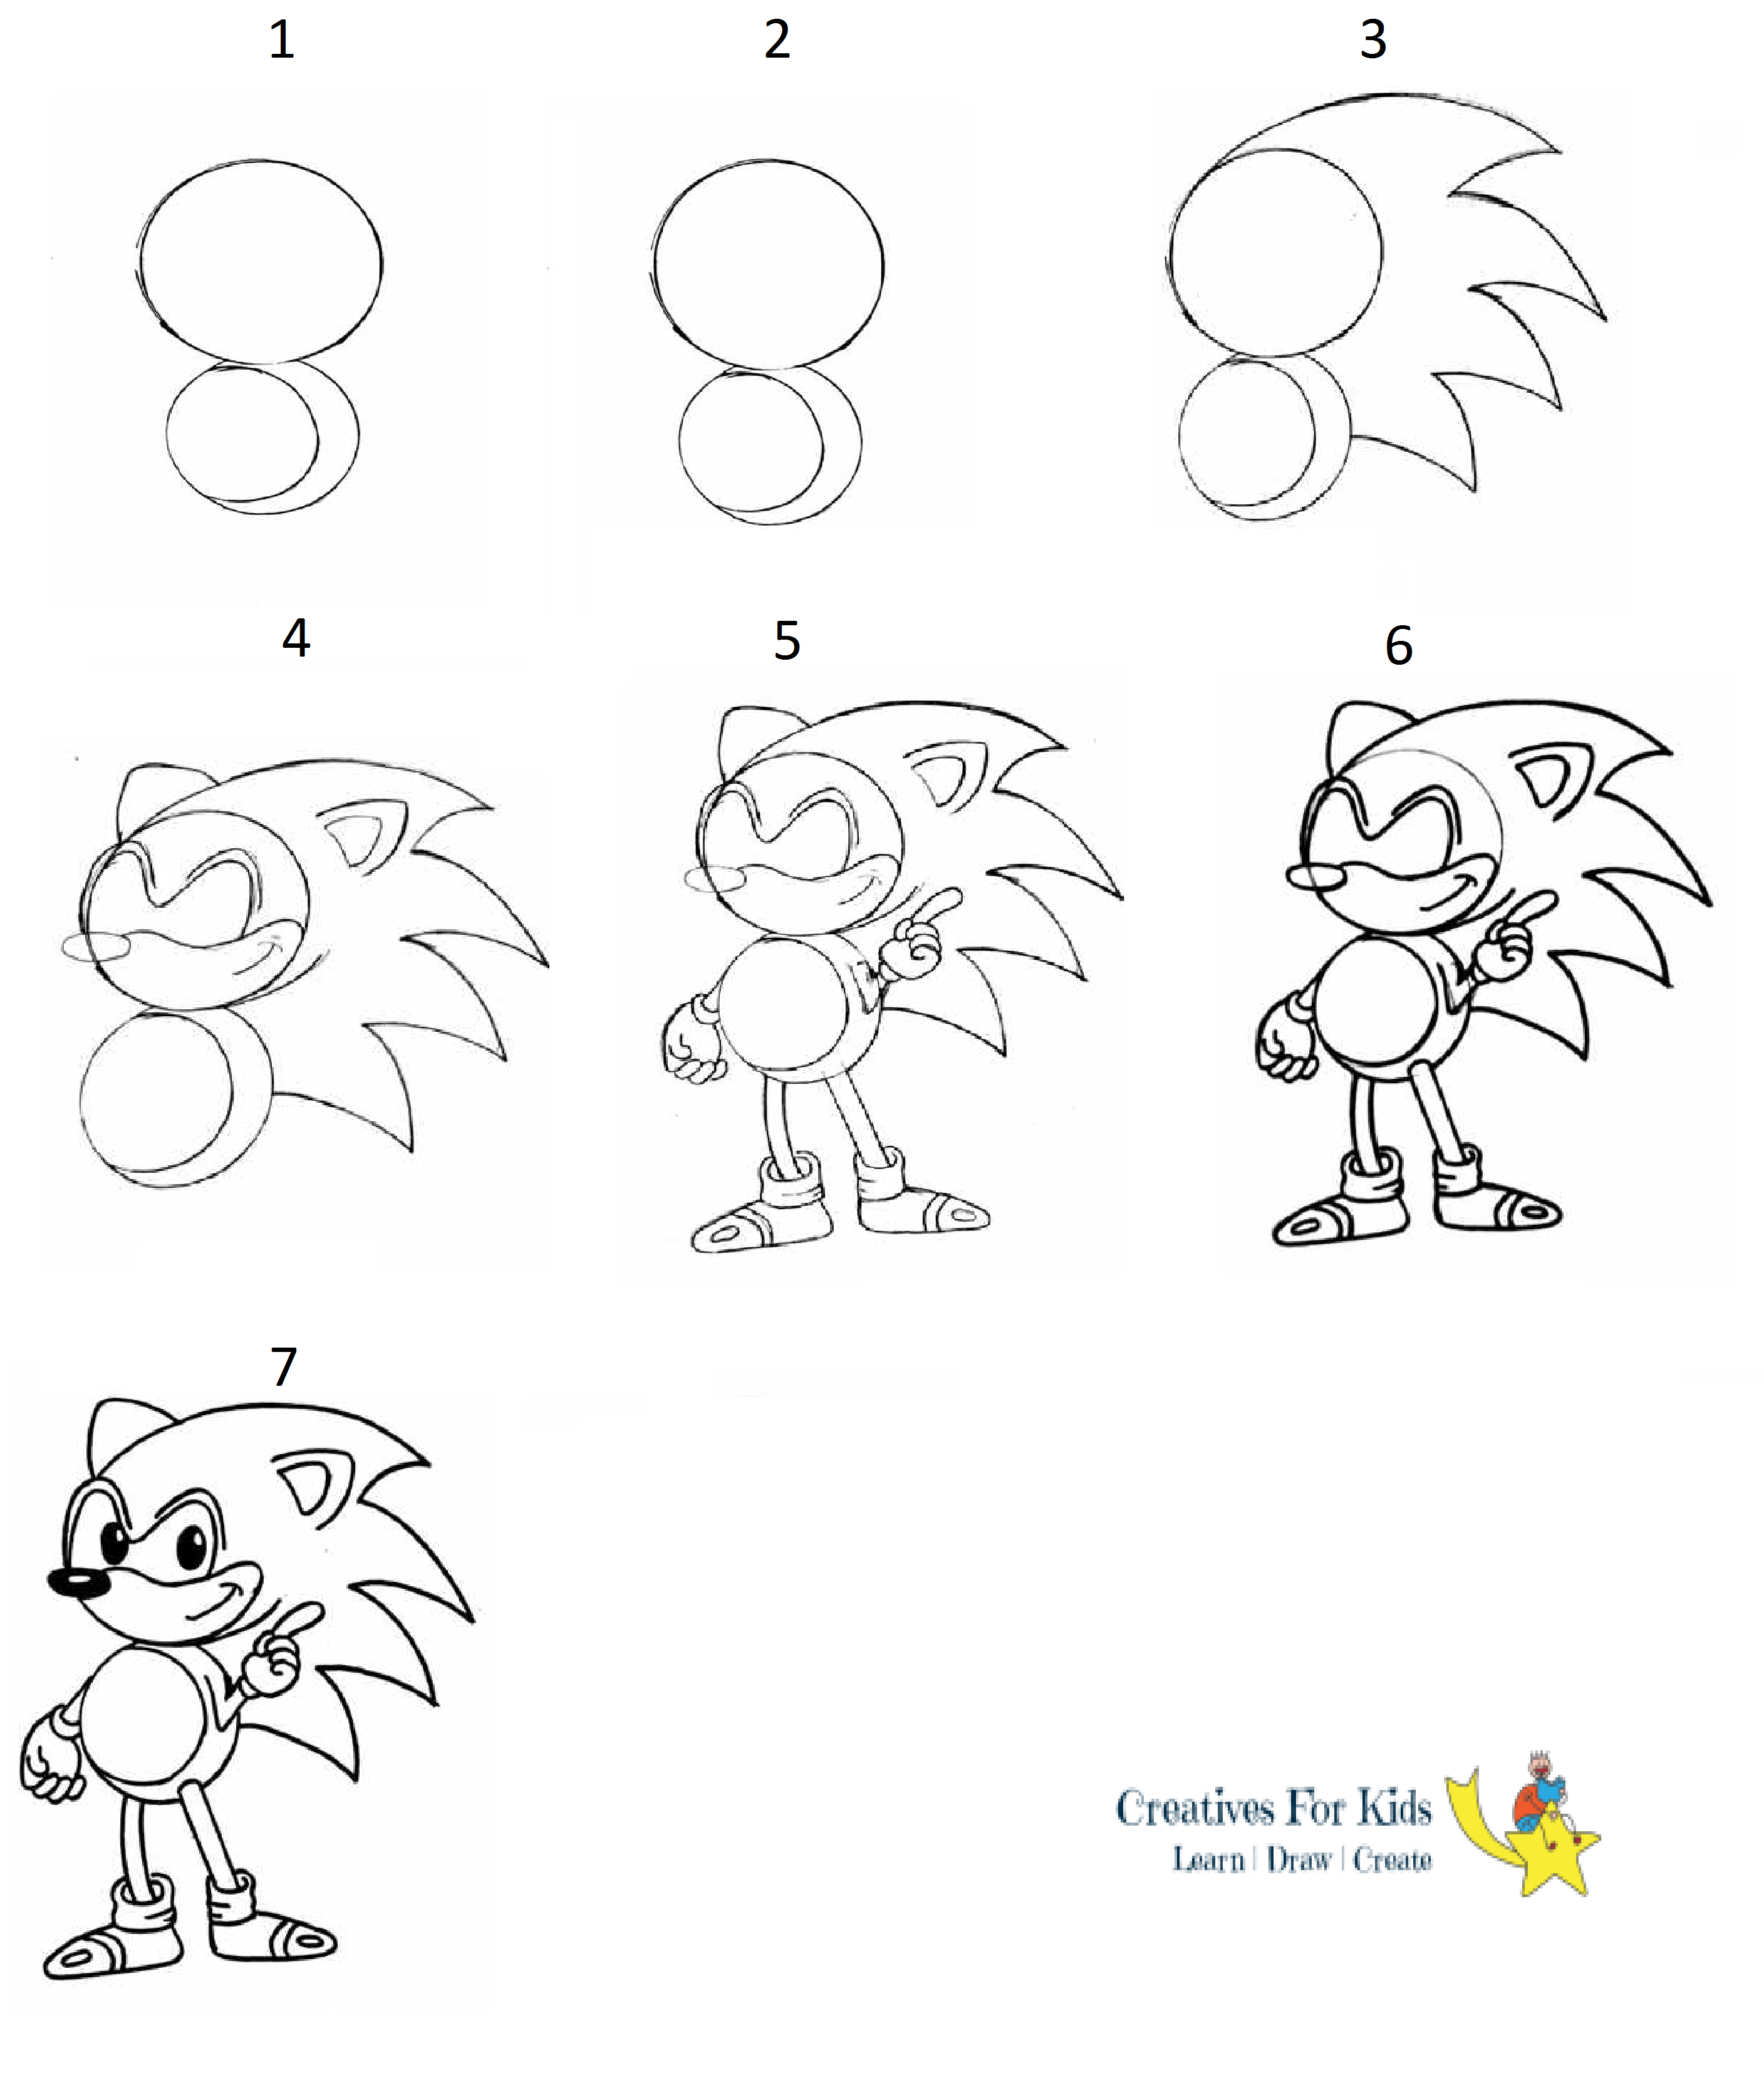 How To Draw Sonic The Hedgehog Step By Step Tutorial Sonicthehedgehog How To Draw Sonic Cute Easy Drawings Art Drawings For Kids